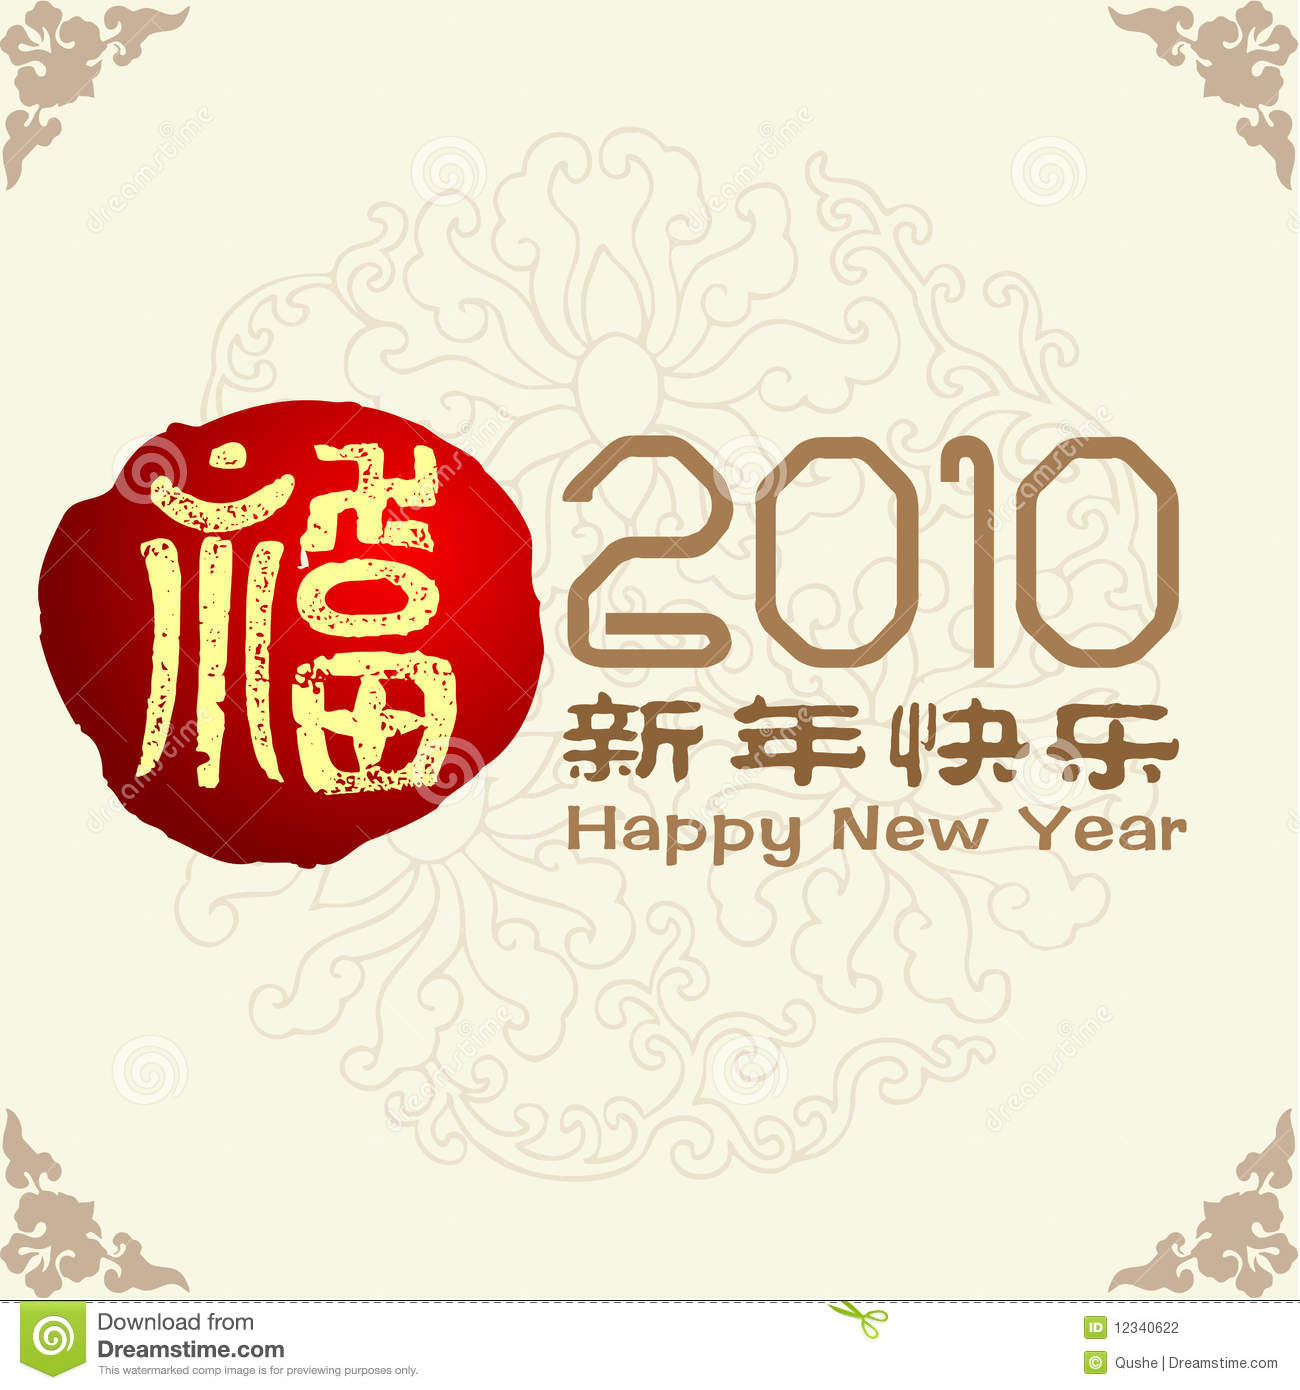 Chinese New Year Greeting Card Stock Vector - Illustration of ...